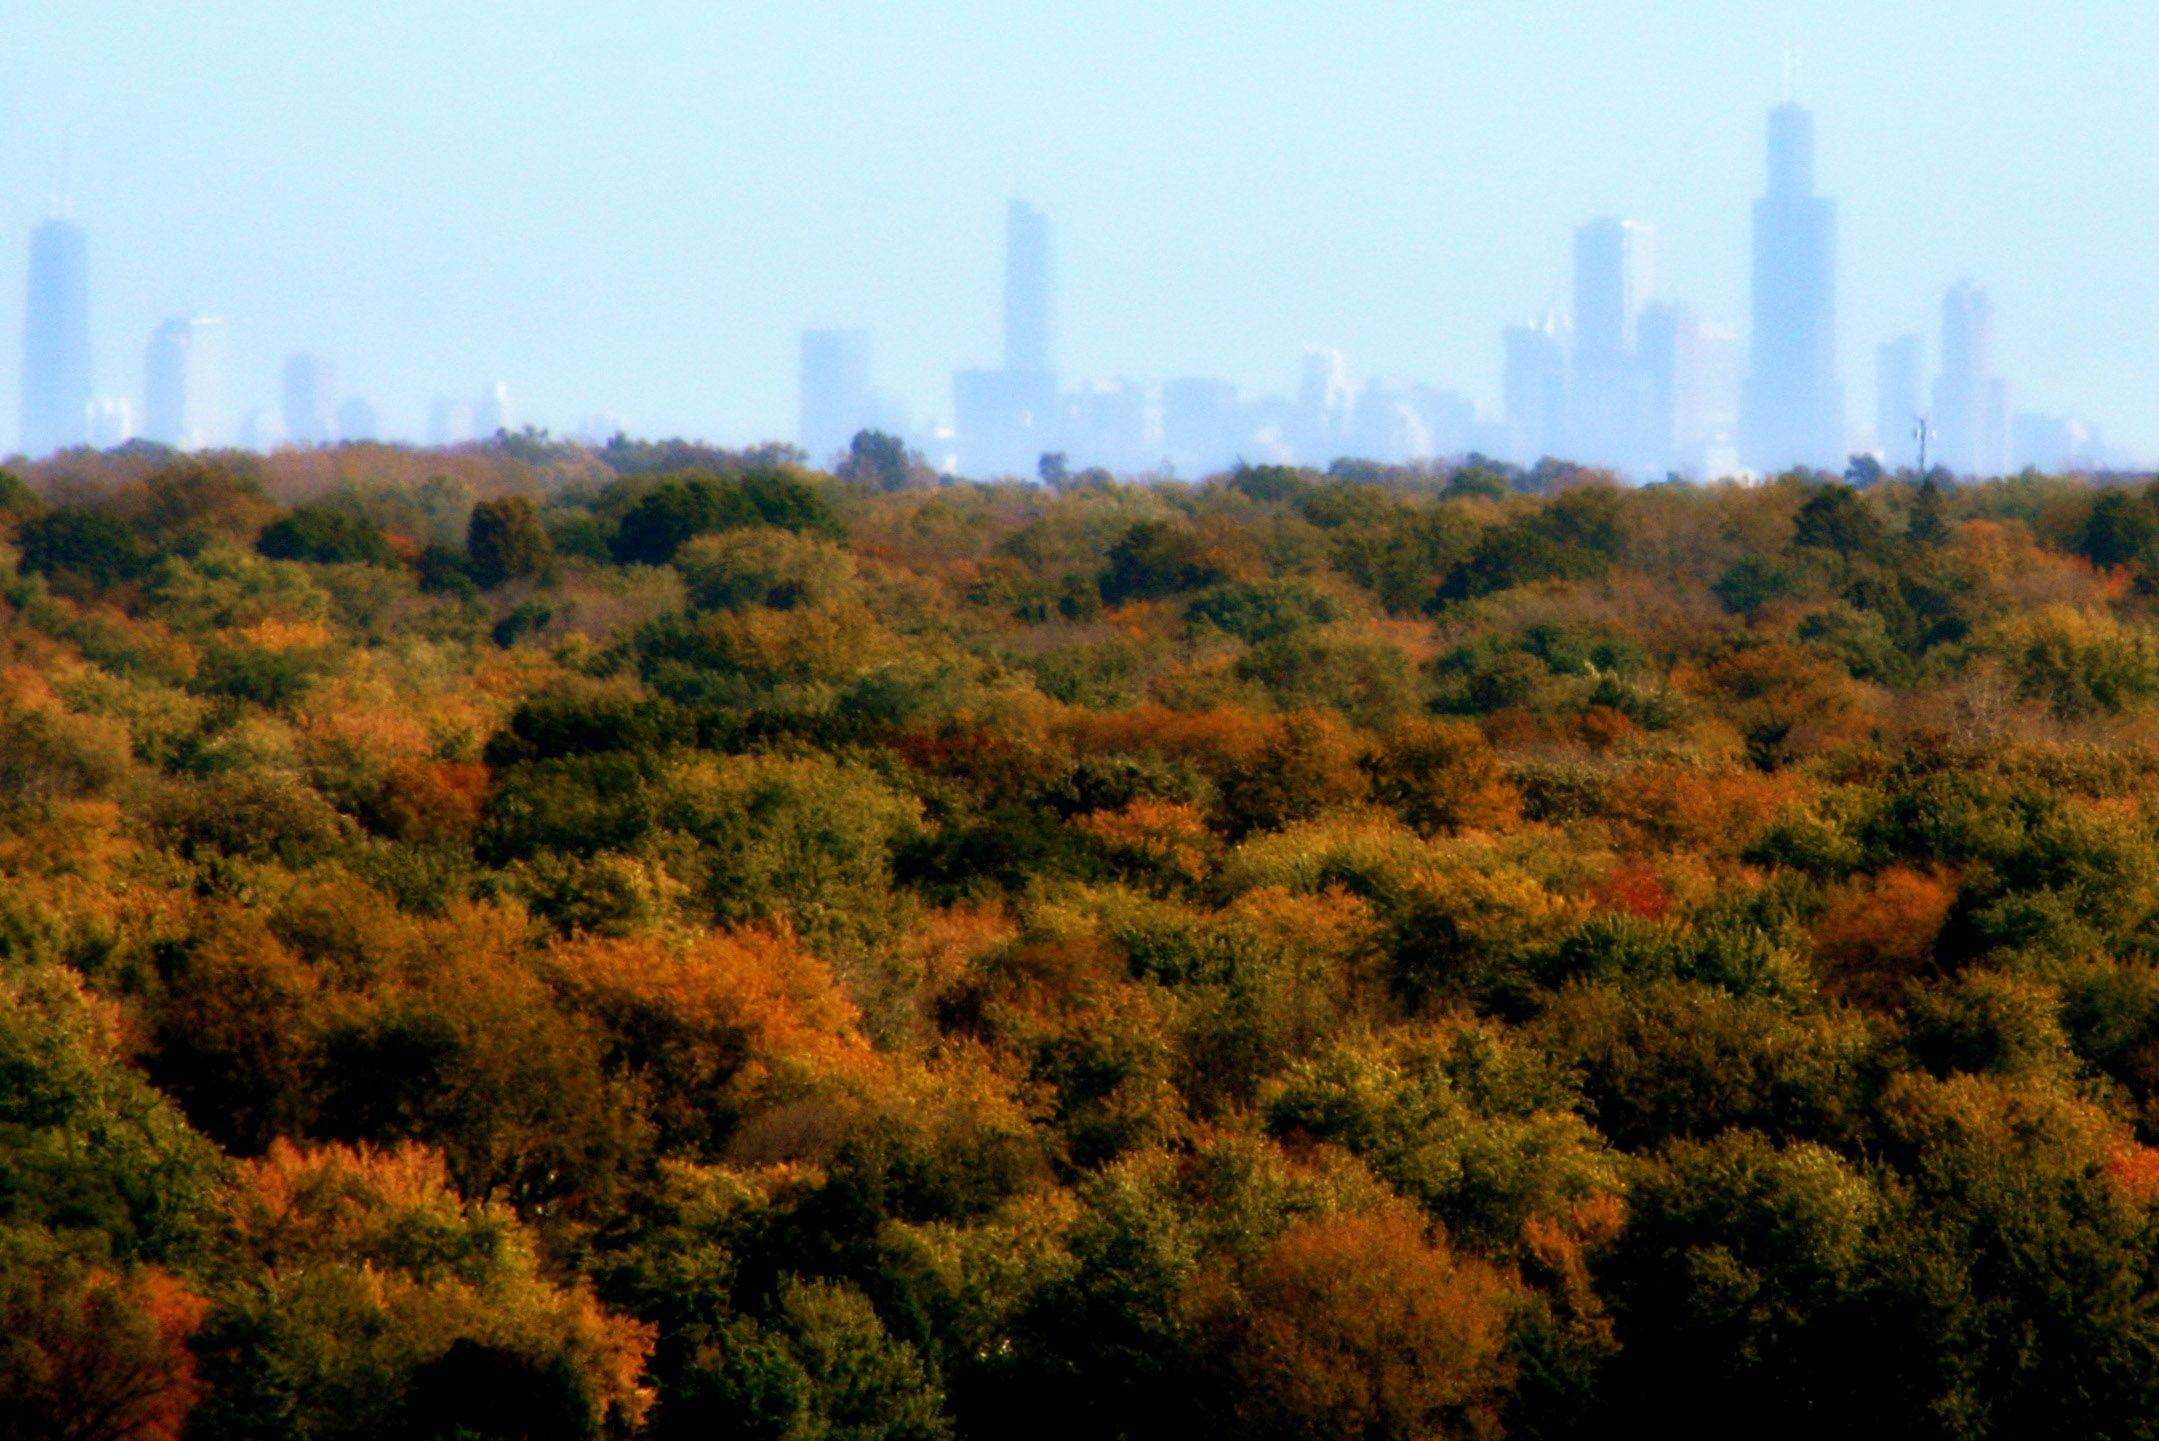 This is the Chicago skyline as viewed from Greene Valley Forest Preserve, which is a landfill, and possibly the highest spot in DuPage County.